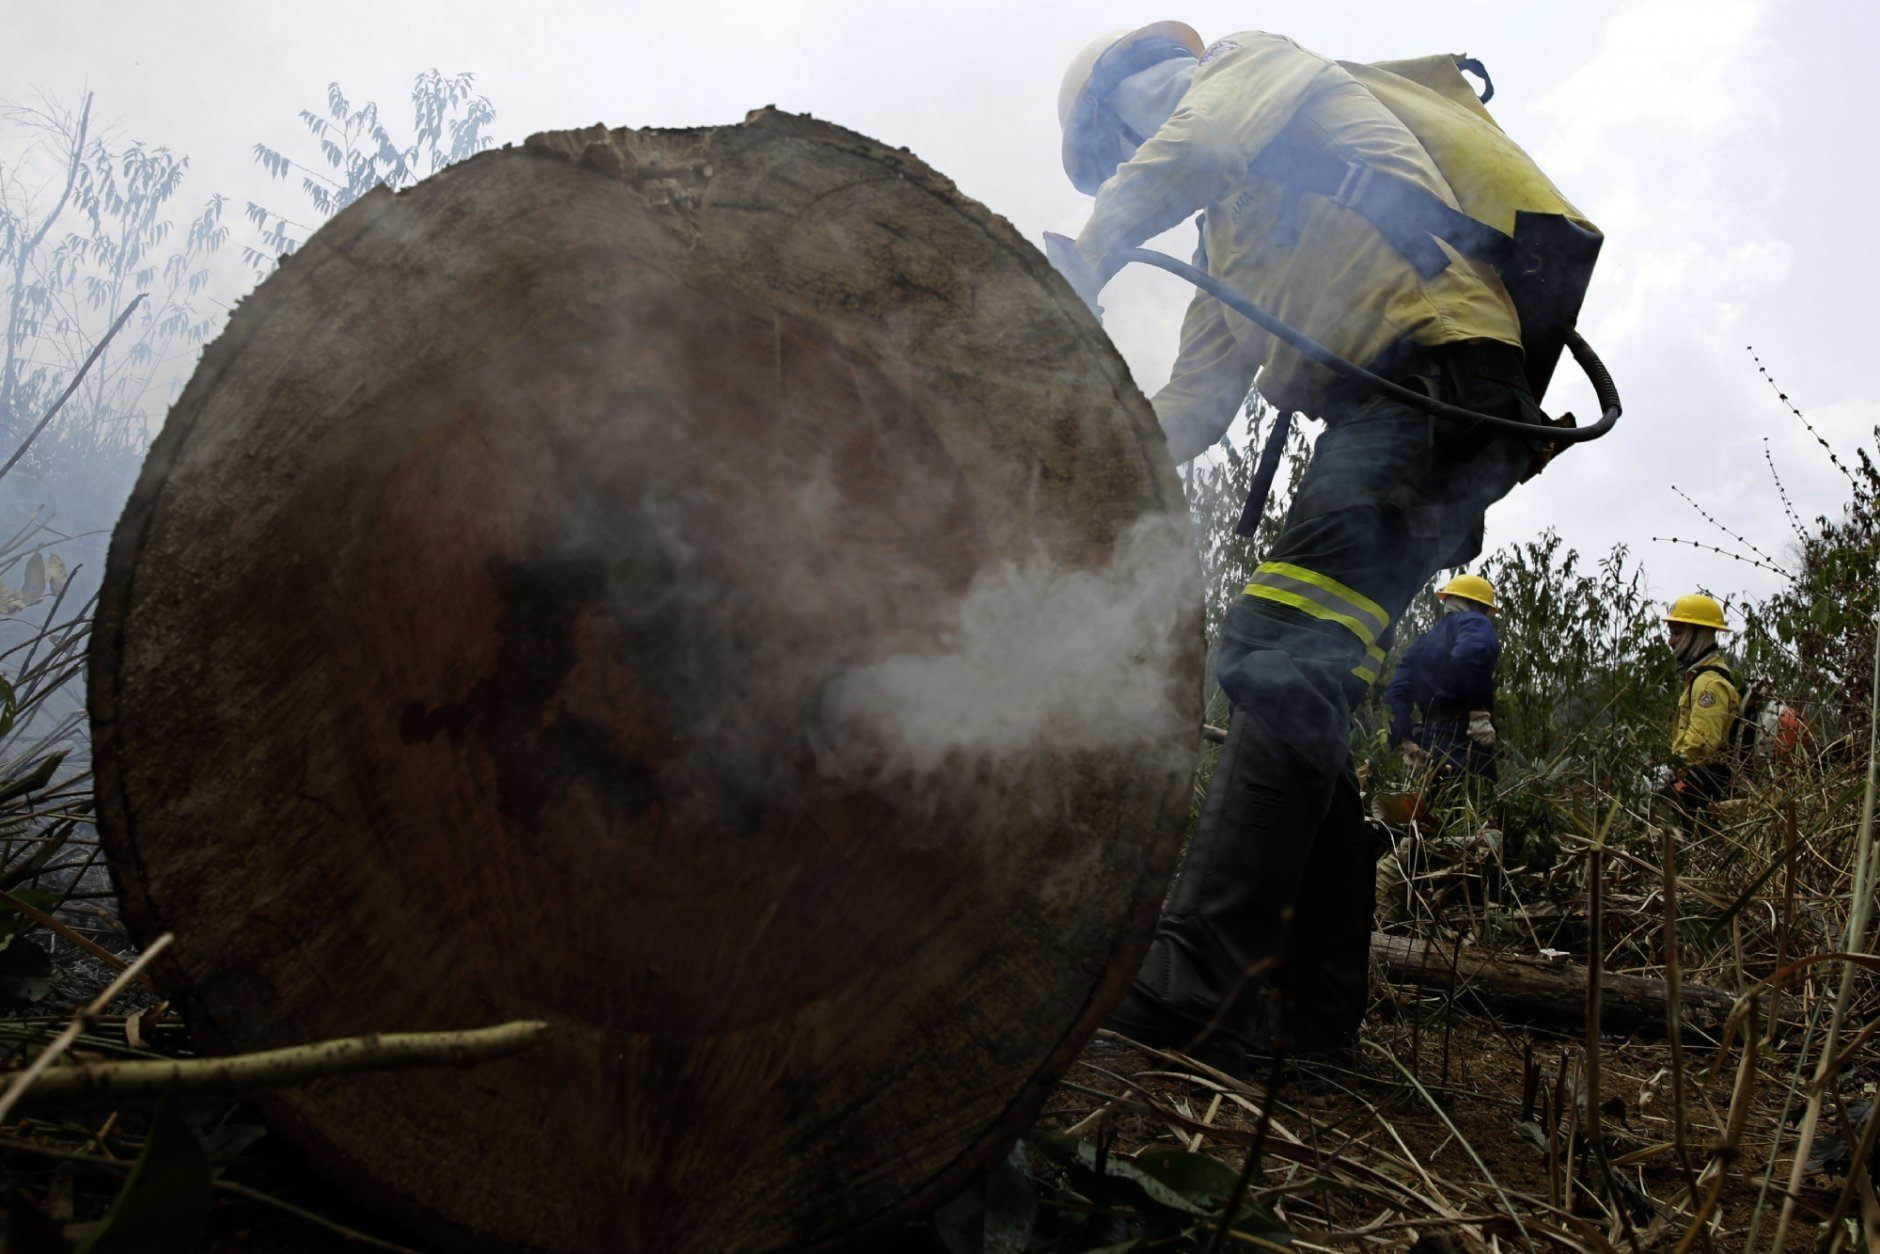 Firefighters work to put out flames in the Vila Nova Samuel region, along the road to the National Forest of Jacunda, near the city of Porto Velho, in Rondonia state, Brazil, Sunday, Aug. 25, 2019. Leaders of the Group of Seven nations said Sunday they were preparing to help Brazil fight the fires burning across the Amazon rainforest and repair the damage even as tens of thousands of soldiers were being deployed to fight the blazes that have caused global alarm. (AP Photo/Eraldo Peres)